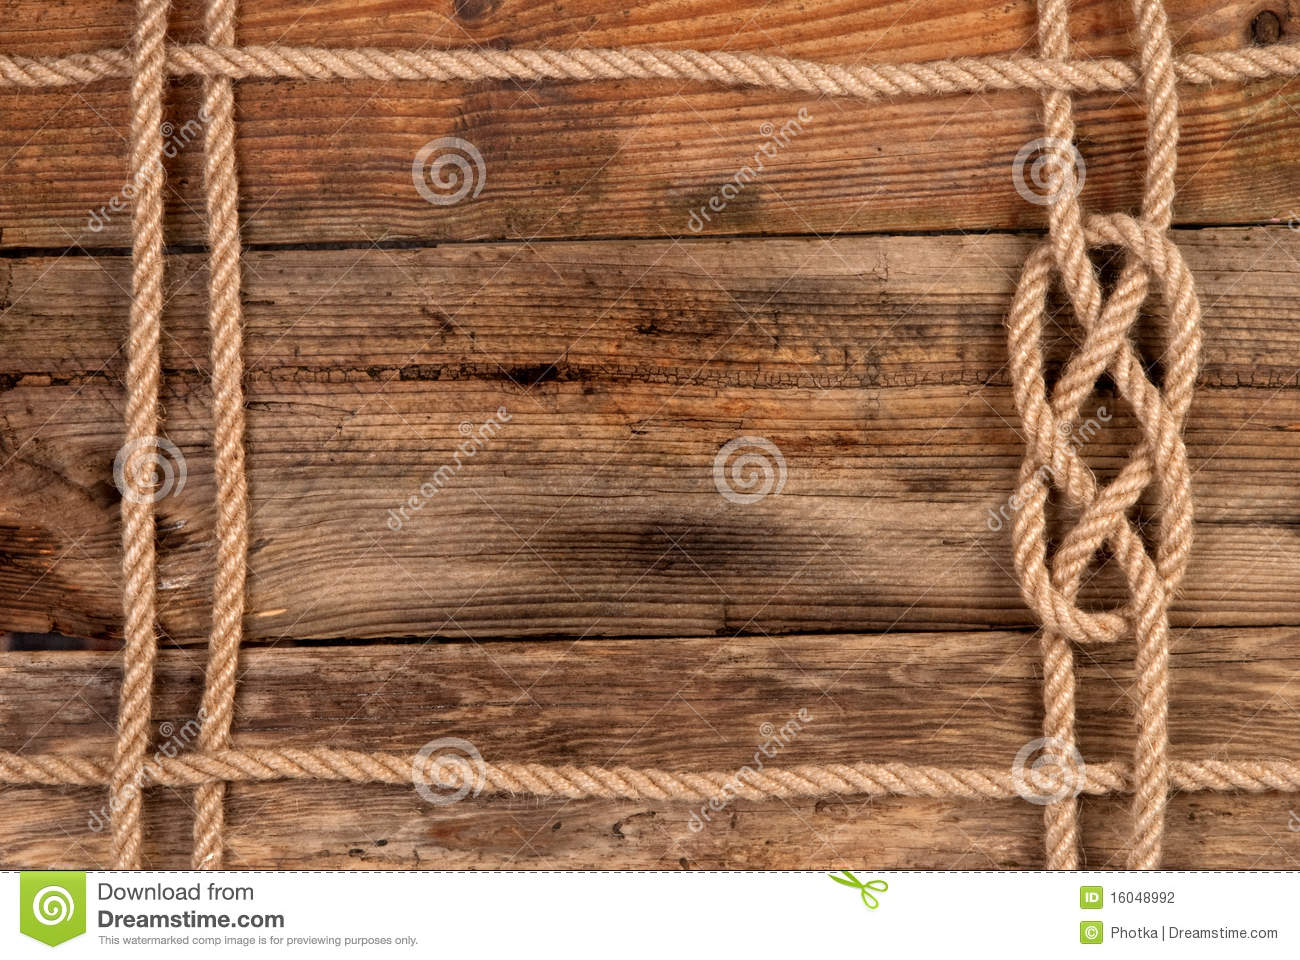 Rope frame stock photography image 16048992 Rope photo frame